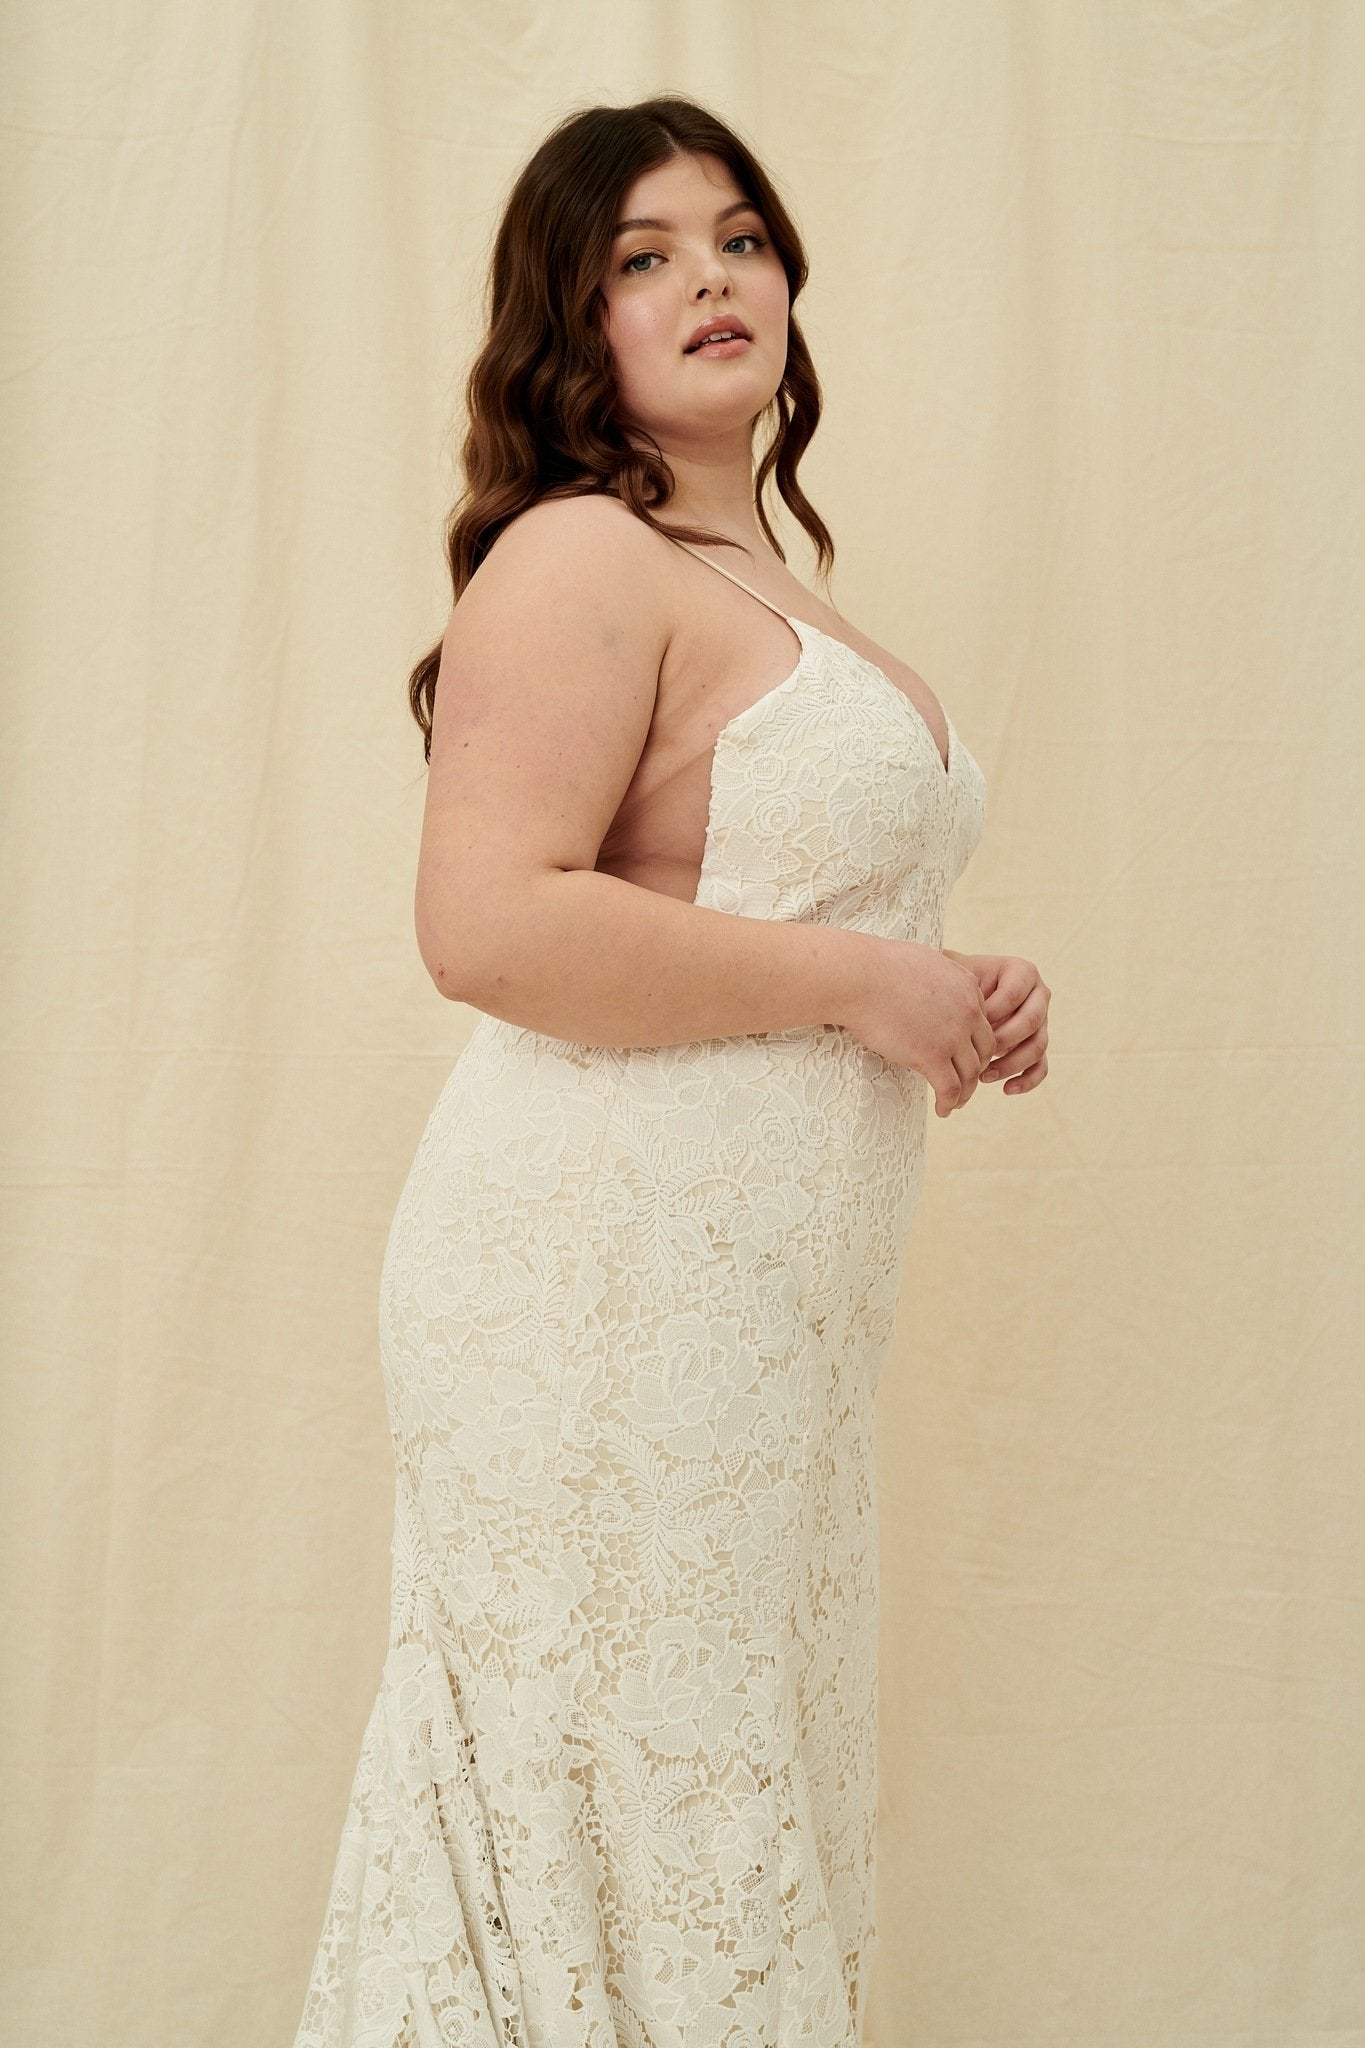 Fitted lace wedding gown for curvy sizes, with spaghetti straps, an open back, and a train